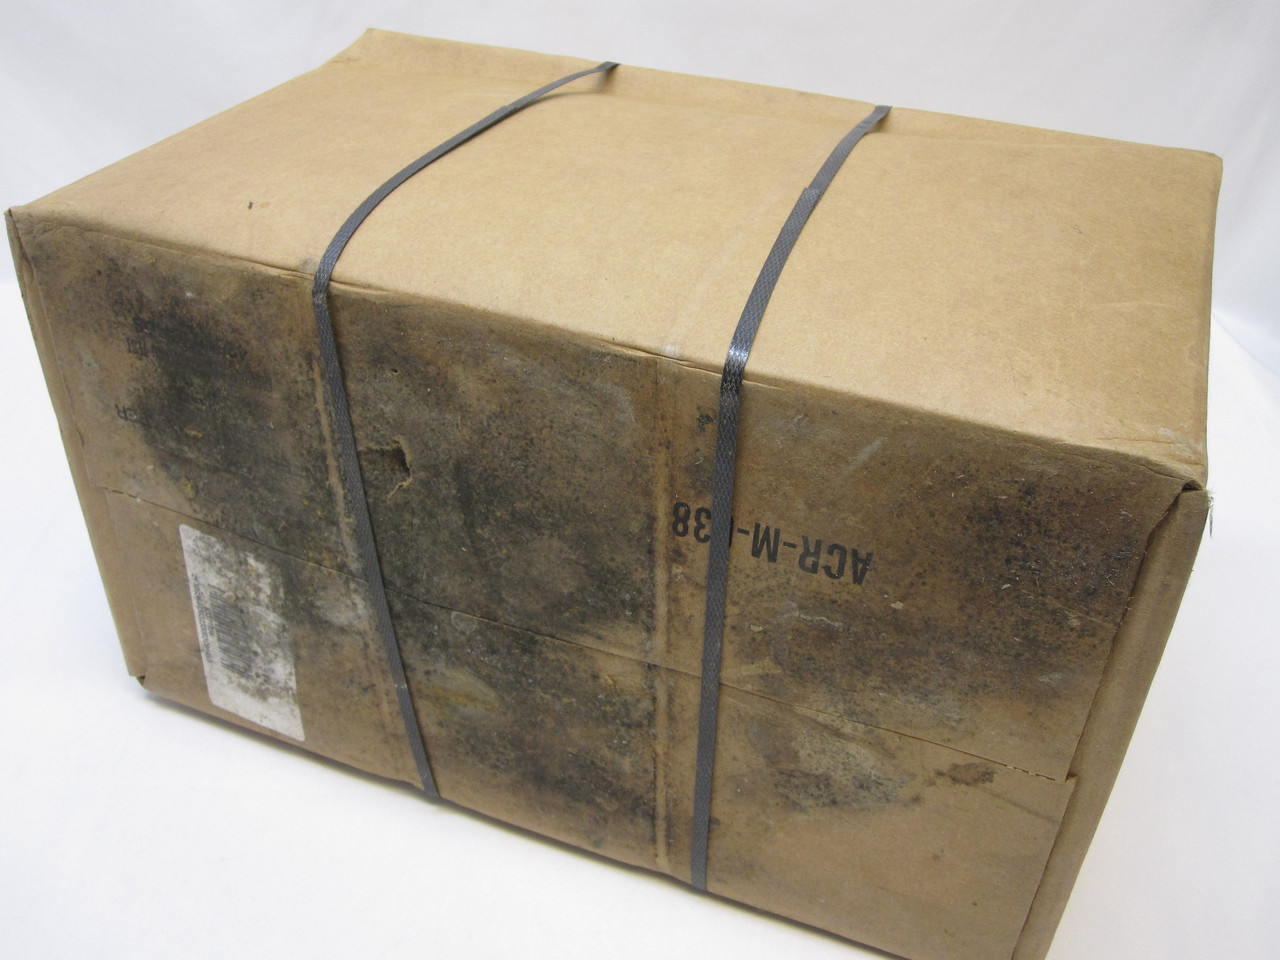 (1) CASE MEALS READY TO EAT MRE CASE A MENU 1-12 MREs FOOD RATIONS INSP 2021